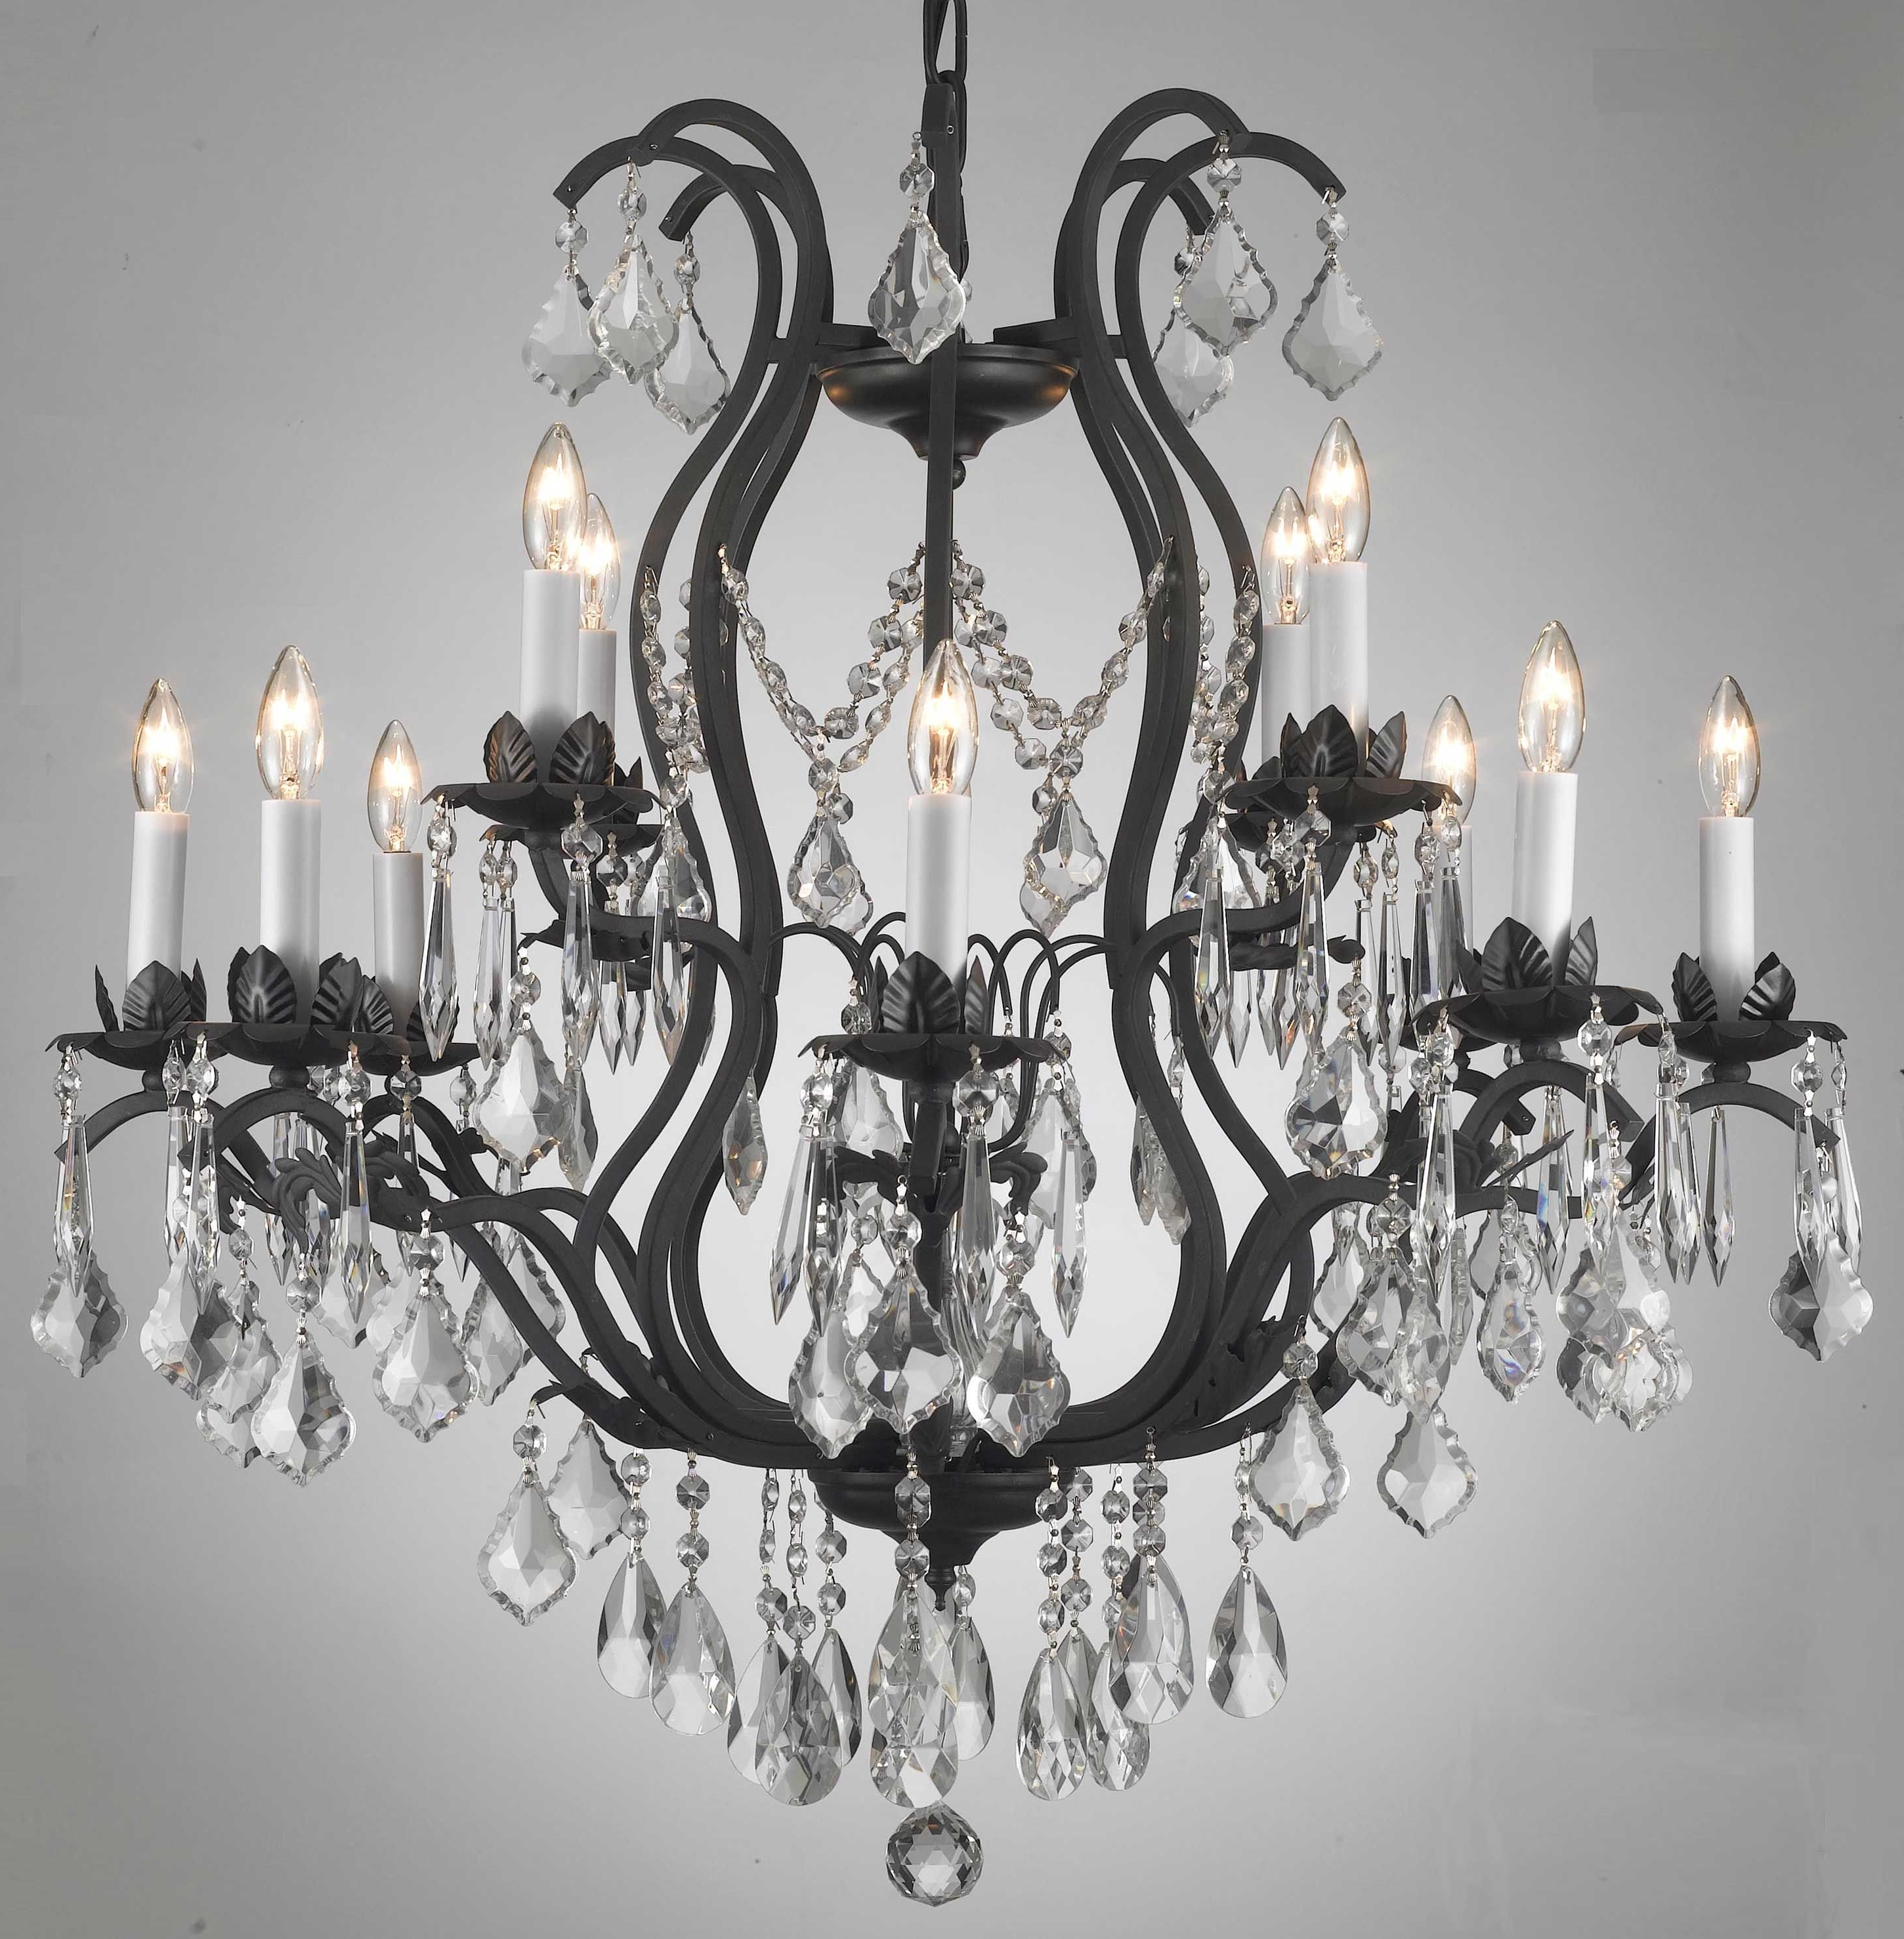 Most Recent A83 3034/8+4 Wrought Iron Chandelier Chandeliers, Crystal Chandelier Throughout Black Iron Chandeliers (View 16 of 20)